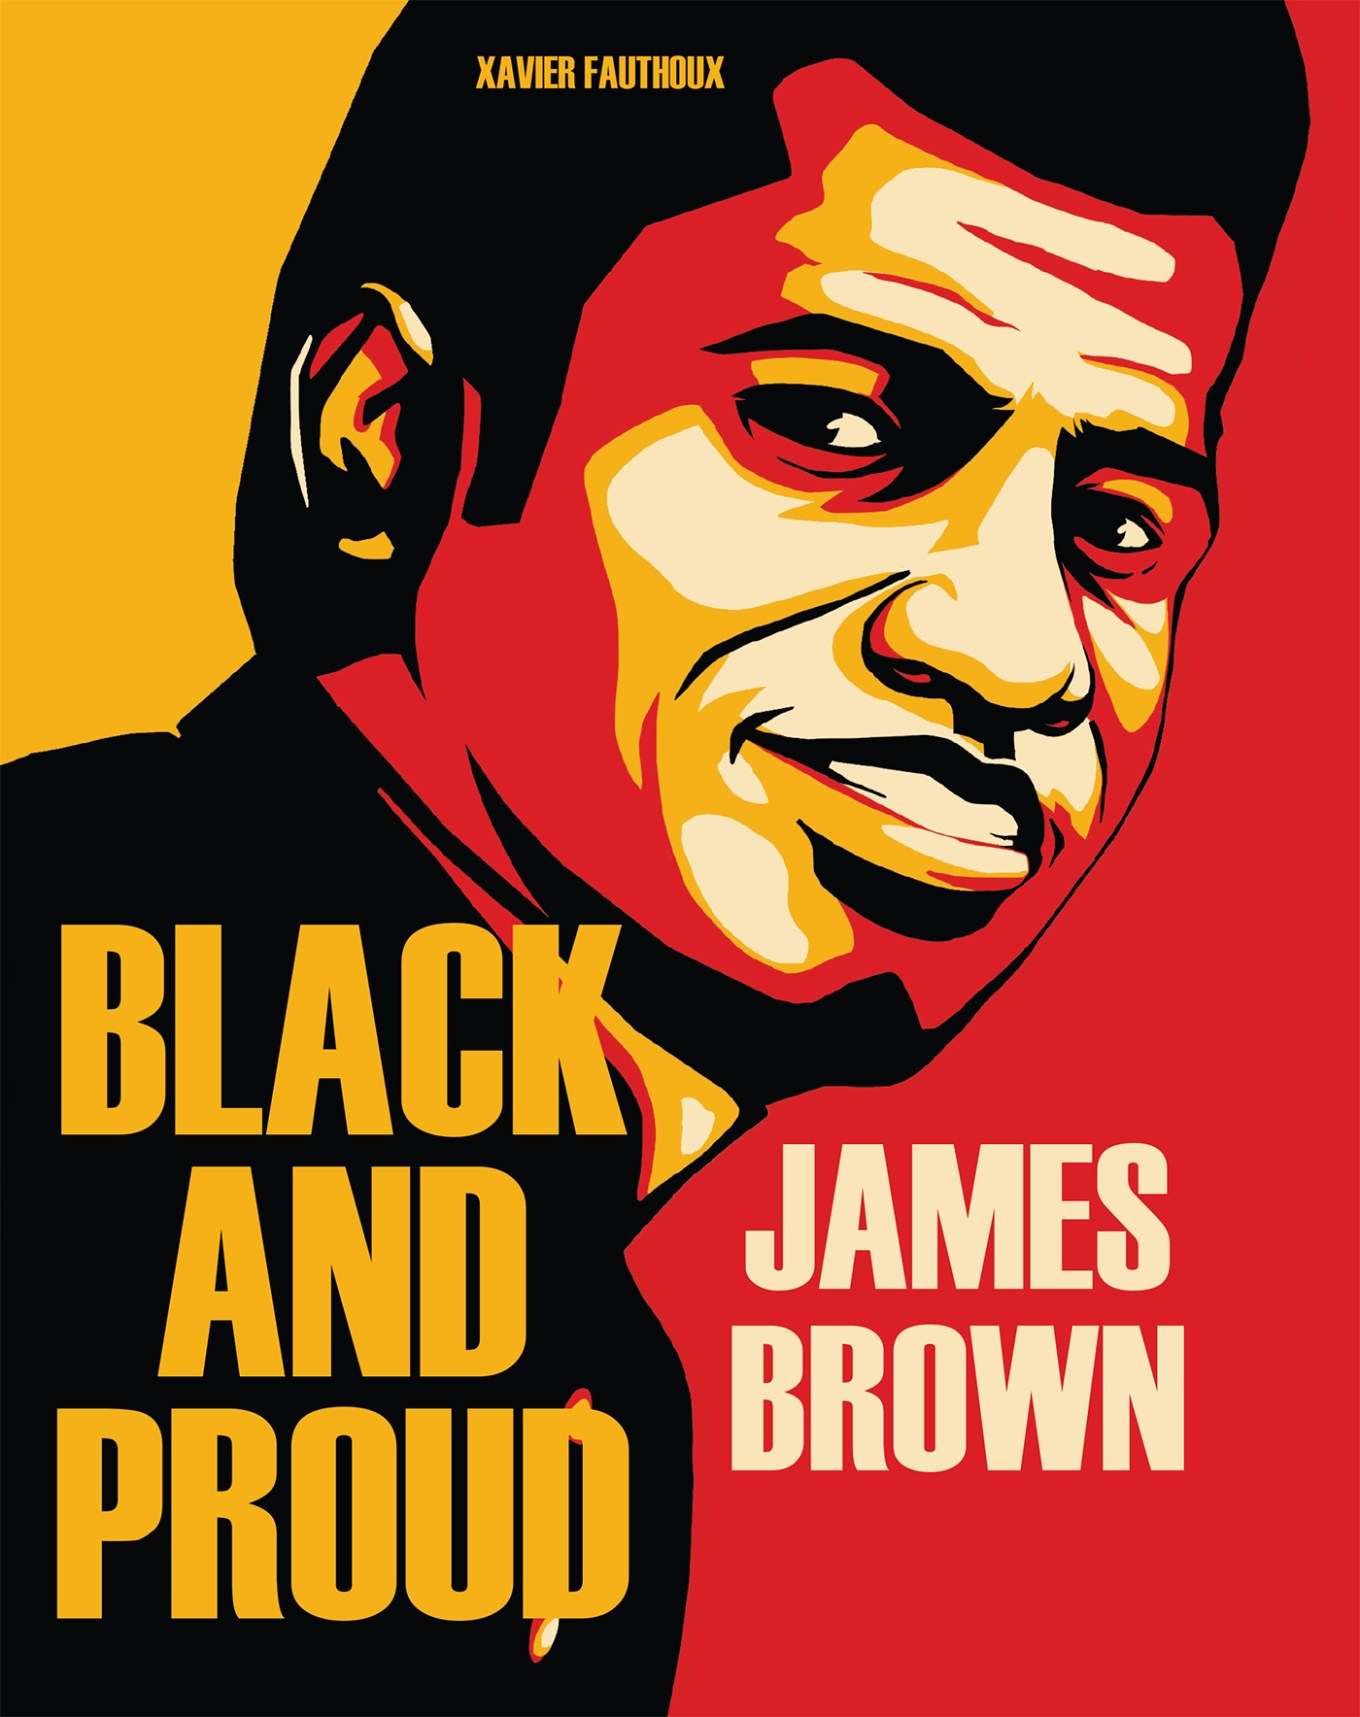 James Brown: Black and Pround (2018)